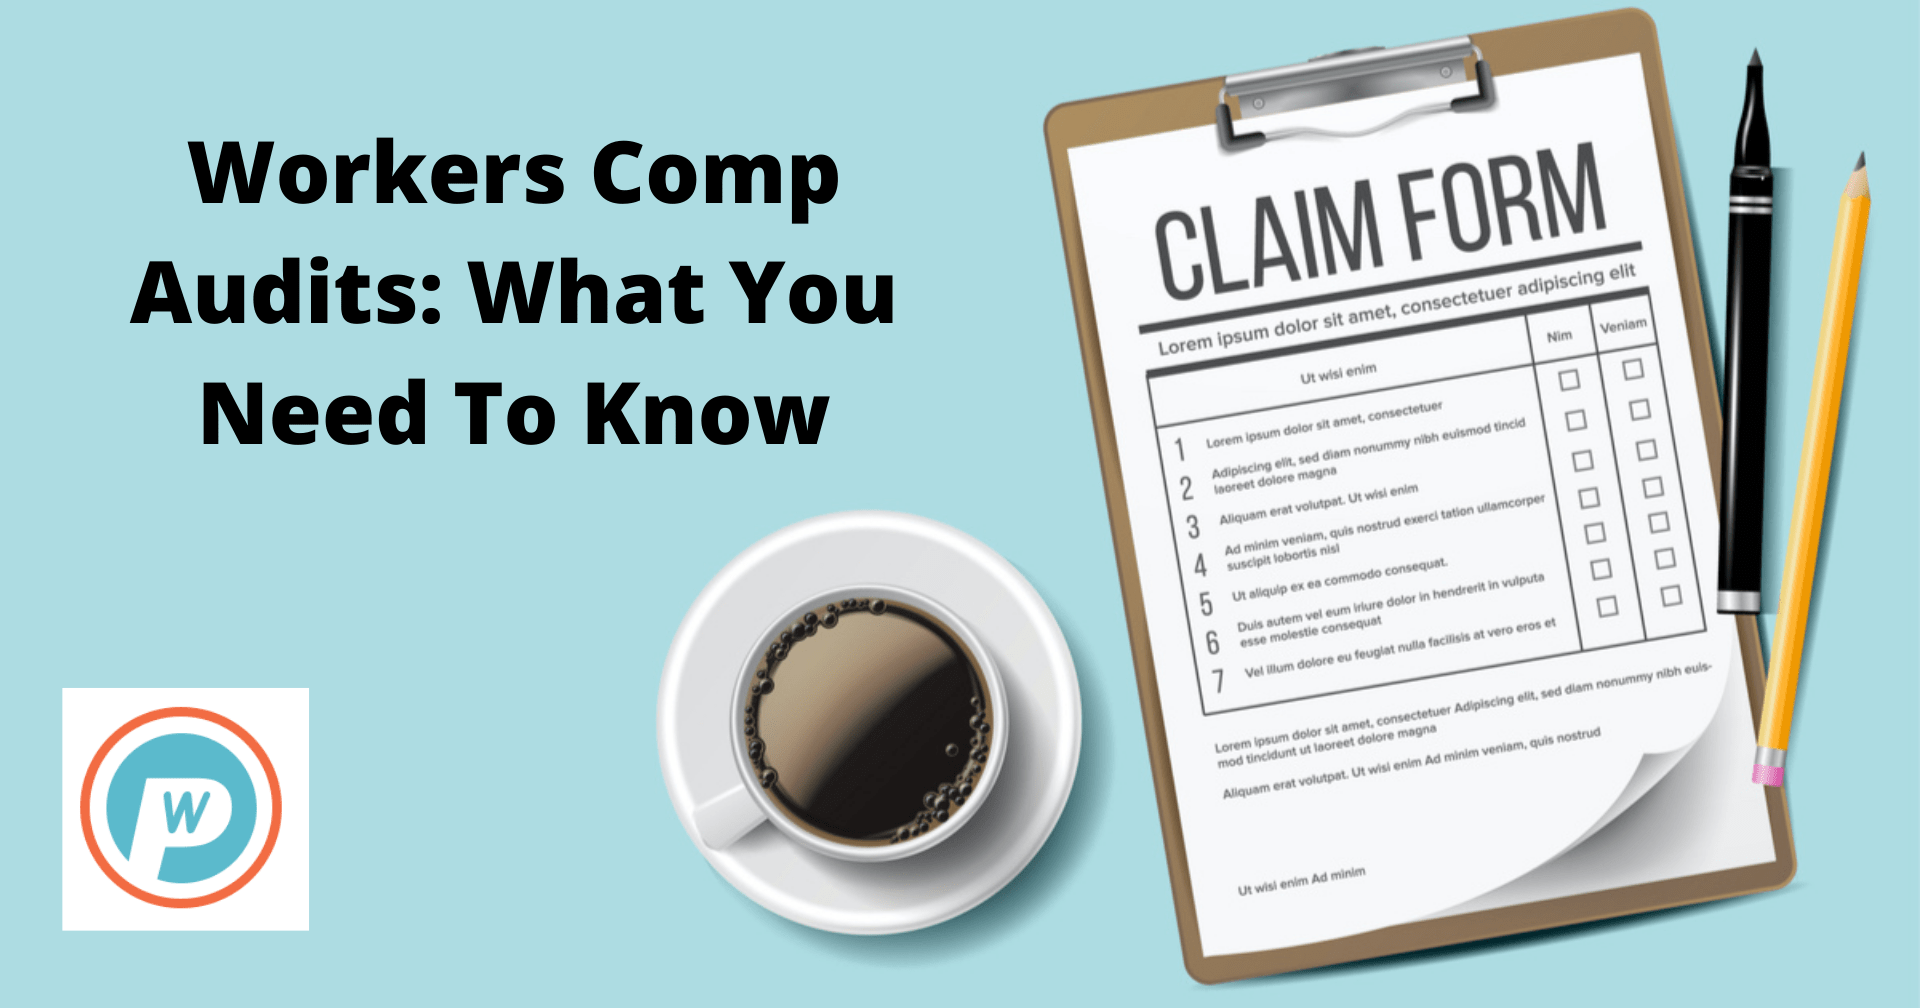 Workers Comp Audits What You Need To Know